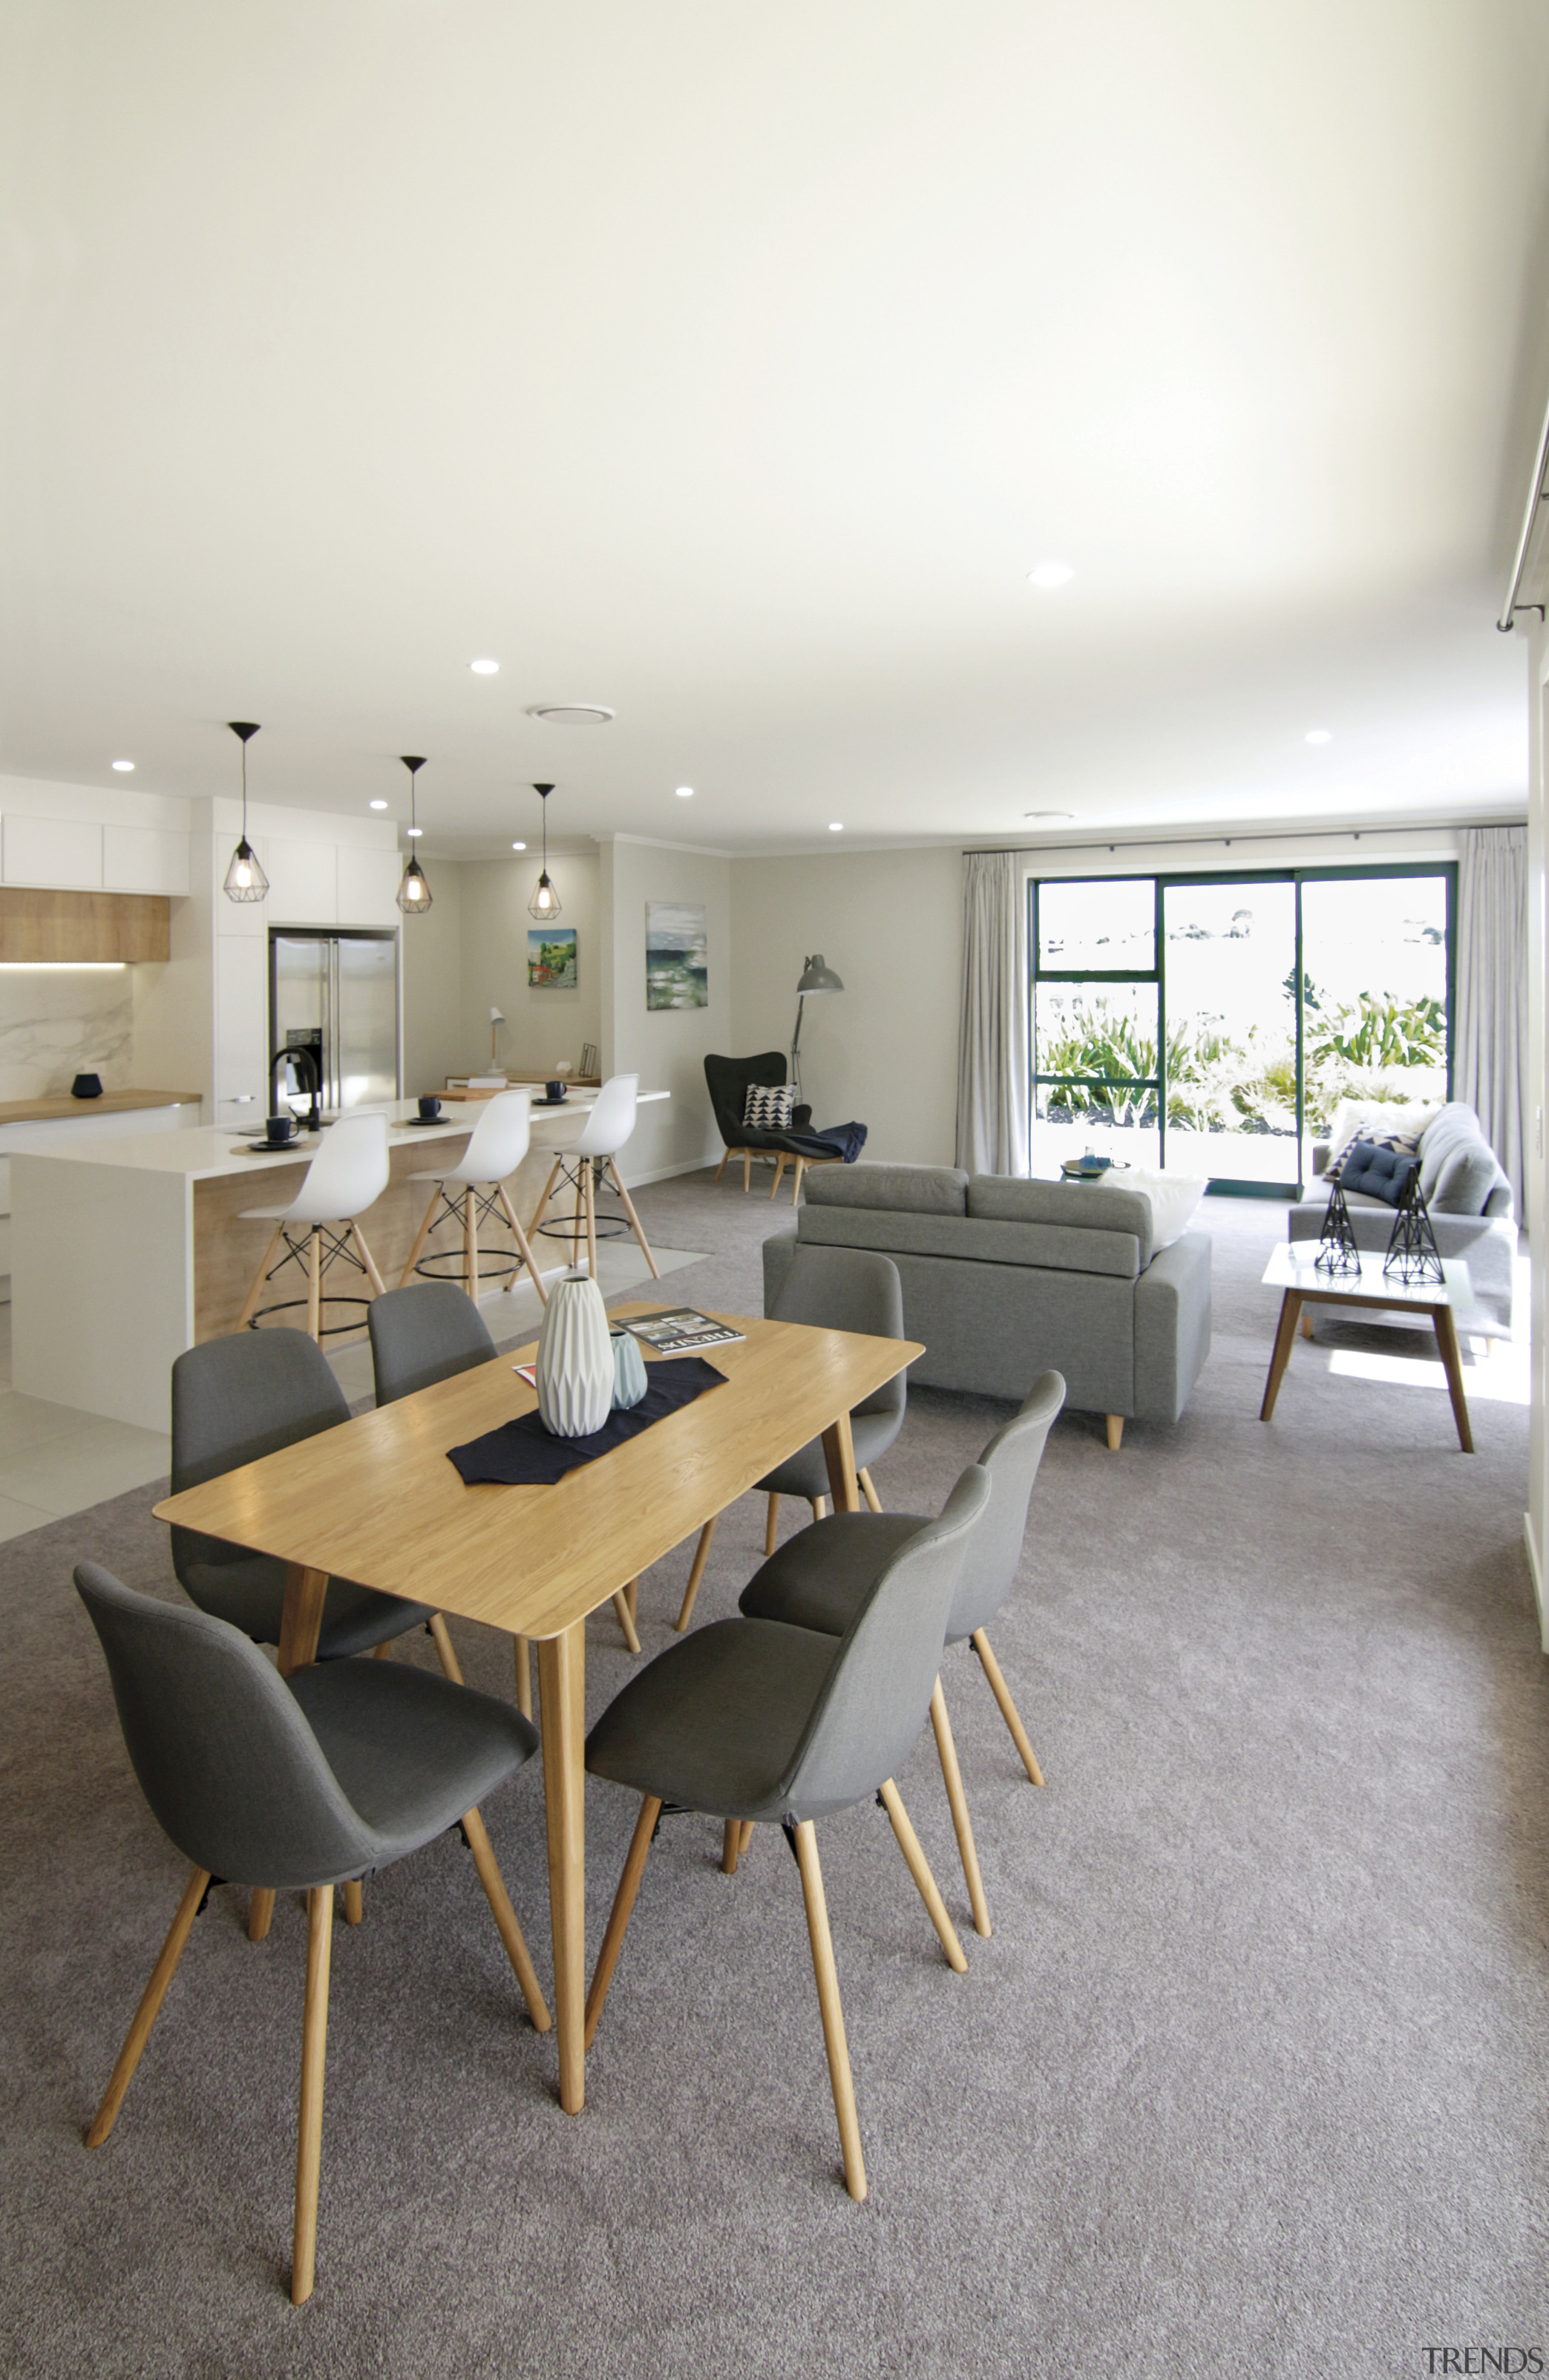 In this Orewa showhome by Fowler Homes, the interior design, living room, room, table, white, gray